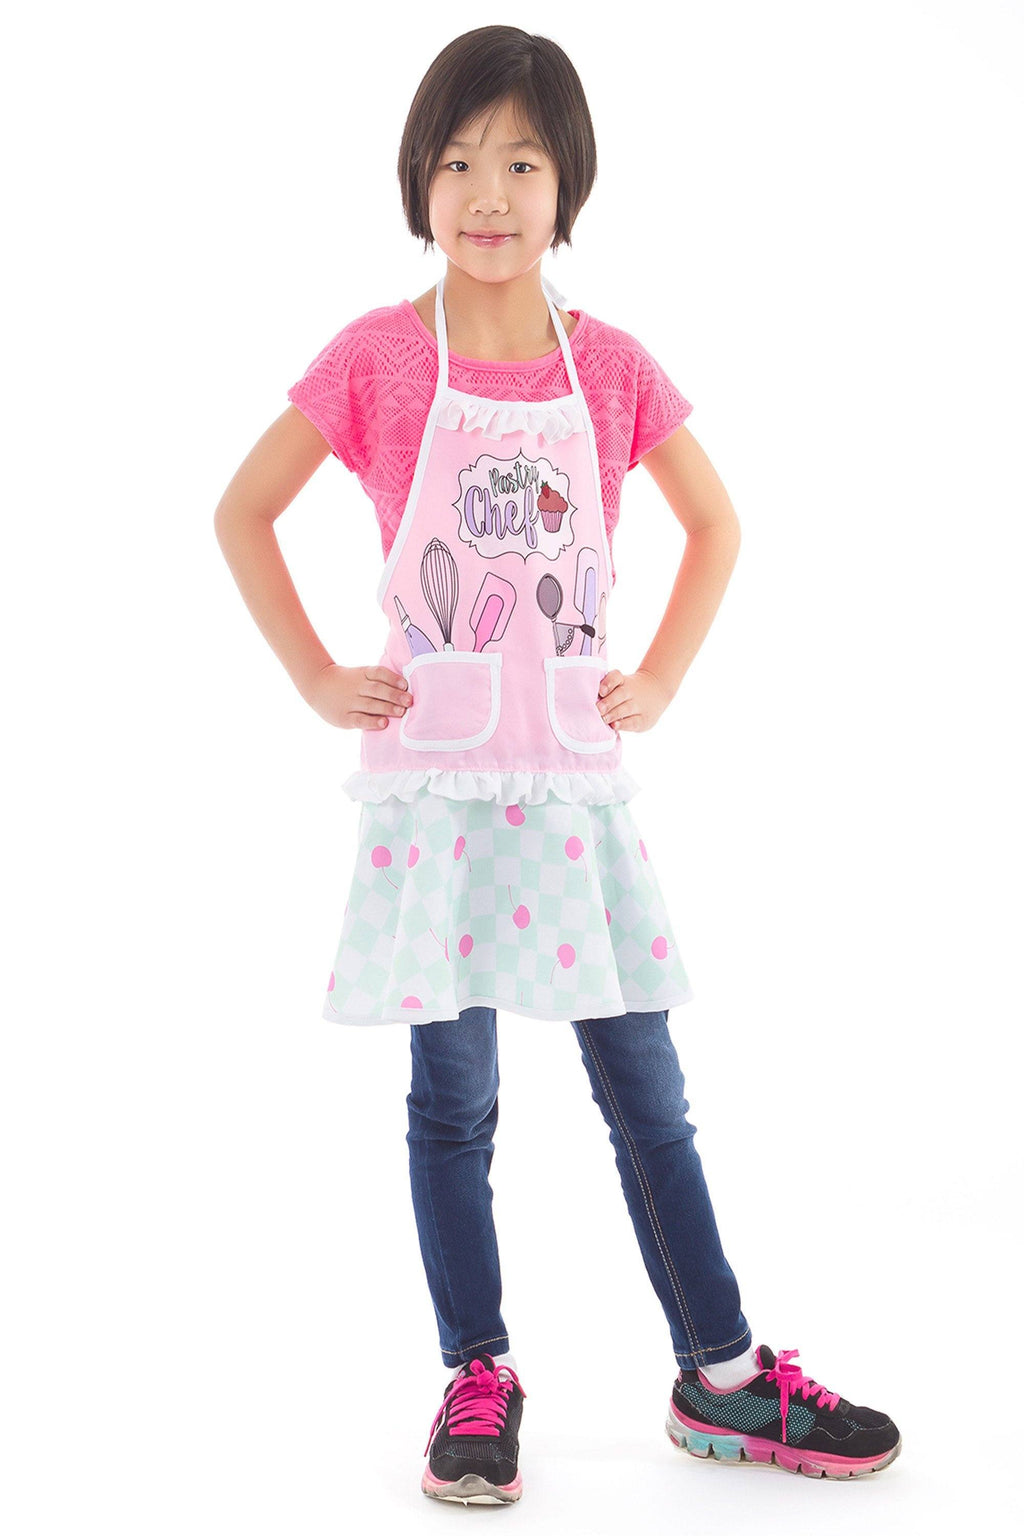 Apron - Little Bakery Shop Apron